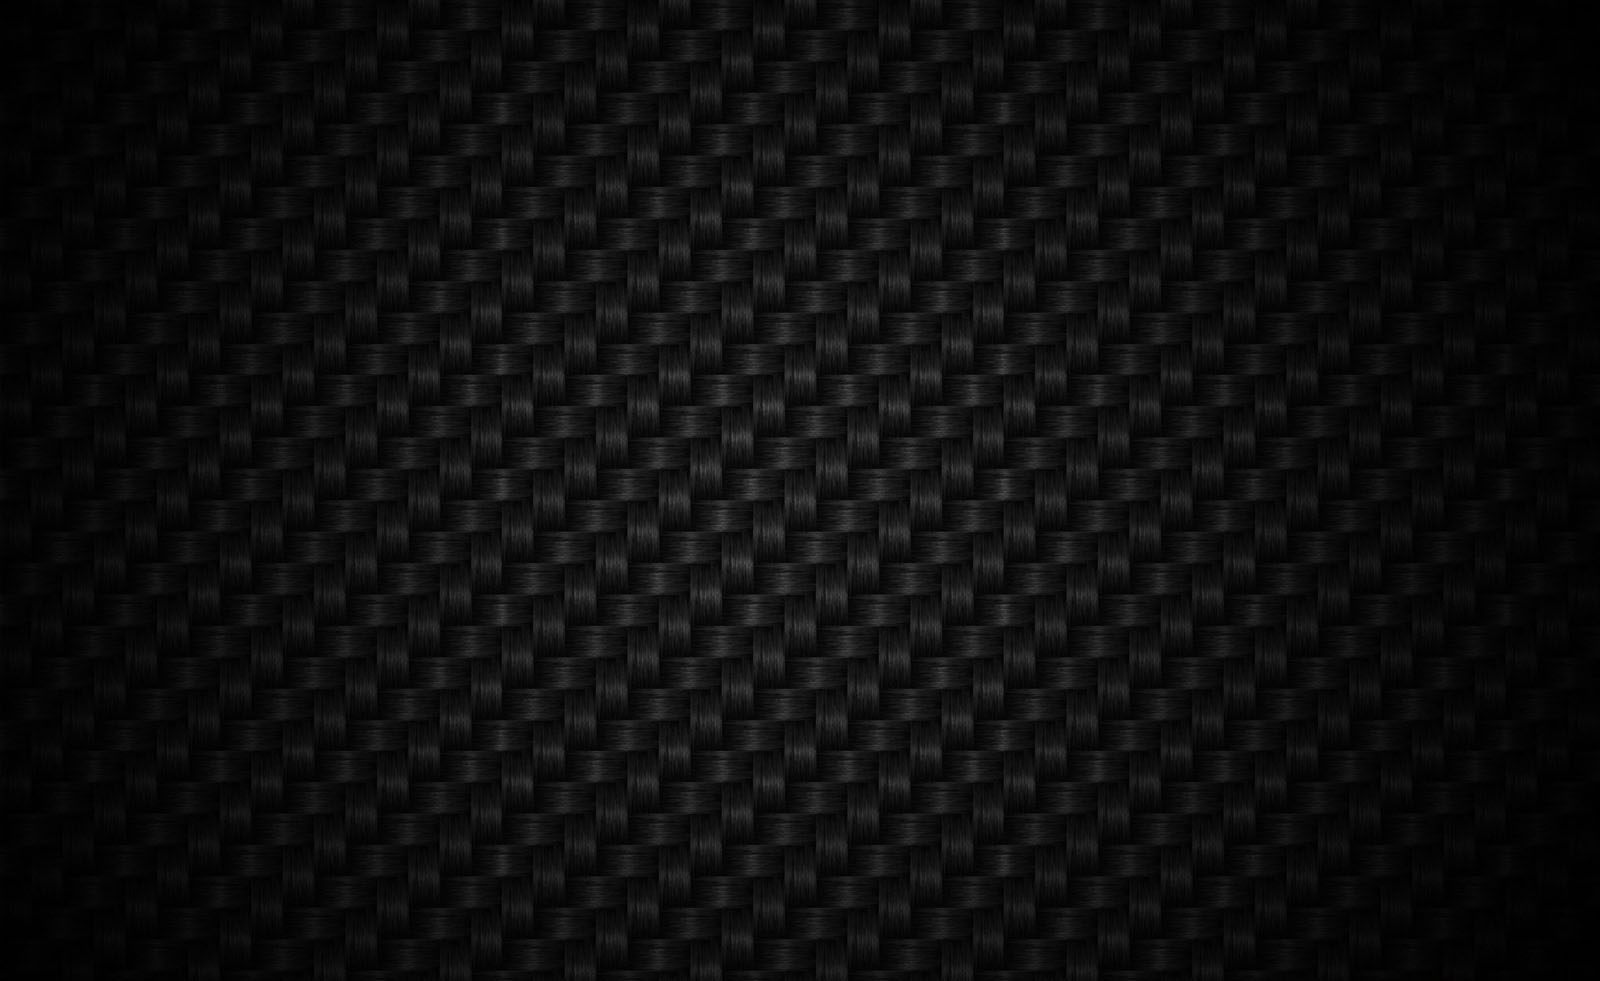 30 beautiful black wallpapers for your desktop mobile and tablet hd black wallpaper pattern black wallpaper pattern voltagebd